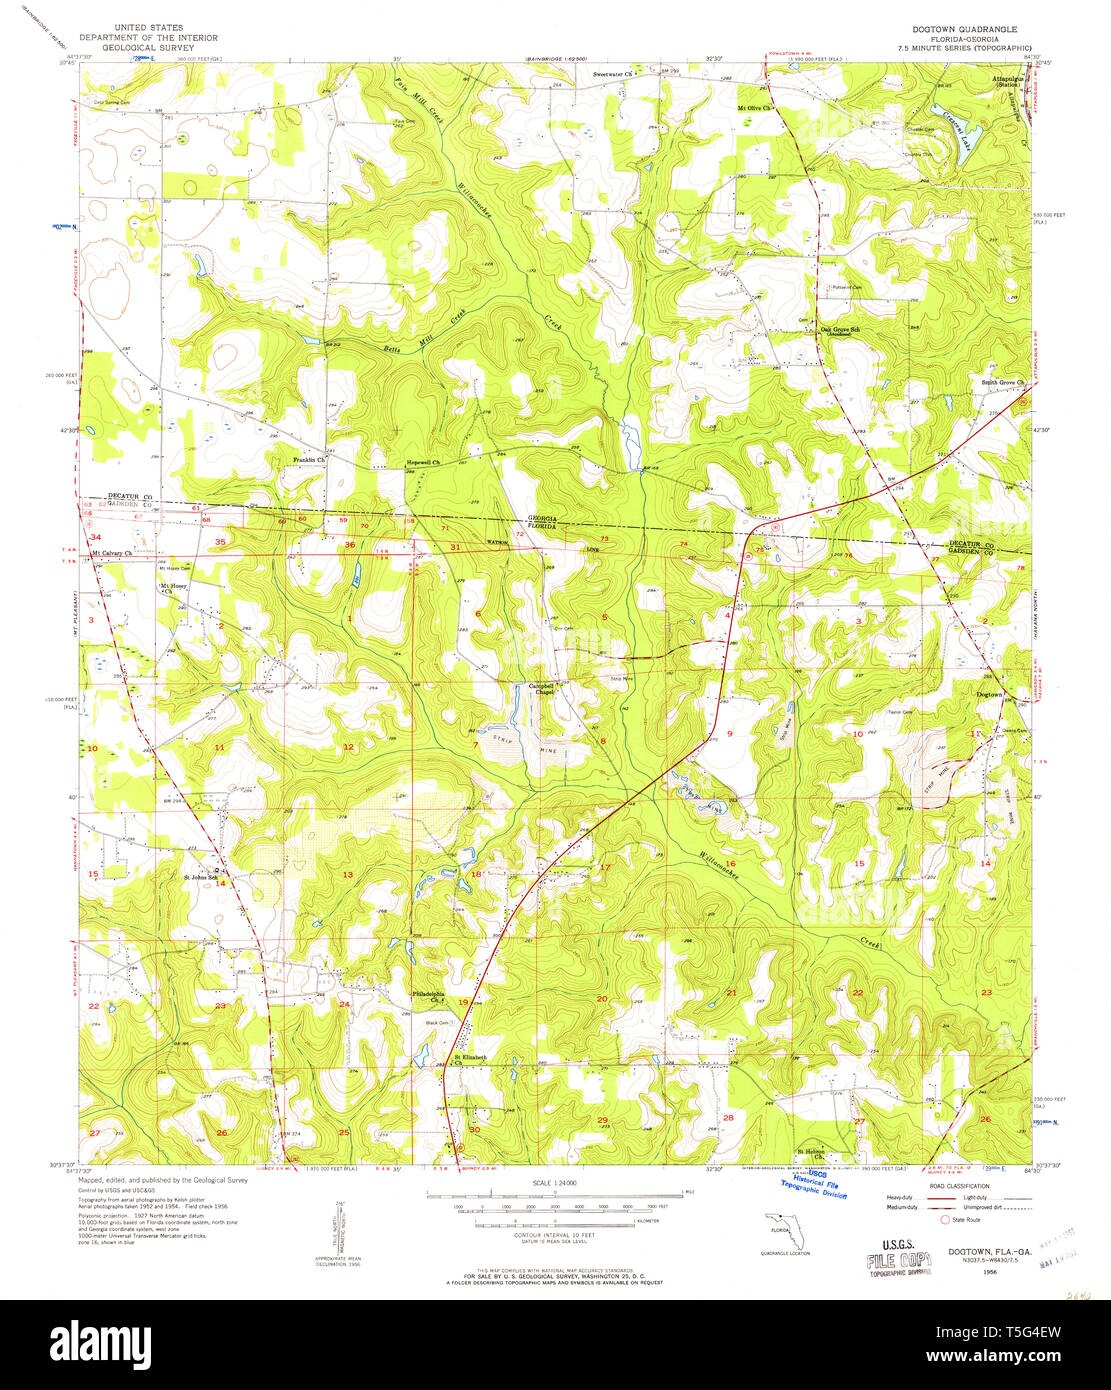 USGS TOPO Map Florida FL Dogtown 345866 1956 24000 ... Get Map Of Fl on map of florida beaches, map of wi, map of georgia, map of montana, map of fort lauderdale, map of tennessee, map of florida panhandle, map of flo, map of tampa, map of tx, map of ms, map of kentucky, map of florida beach resorts, map of east coast of florida, map of ak, map of florida cities, map of michigan, map of volusia county florida, map of state, map of florida gulf coast,